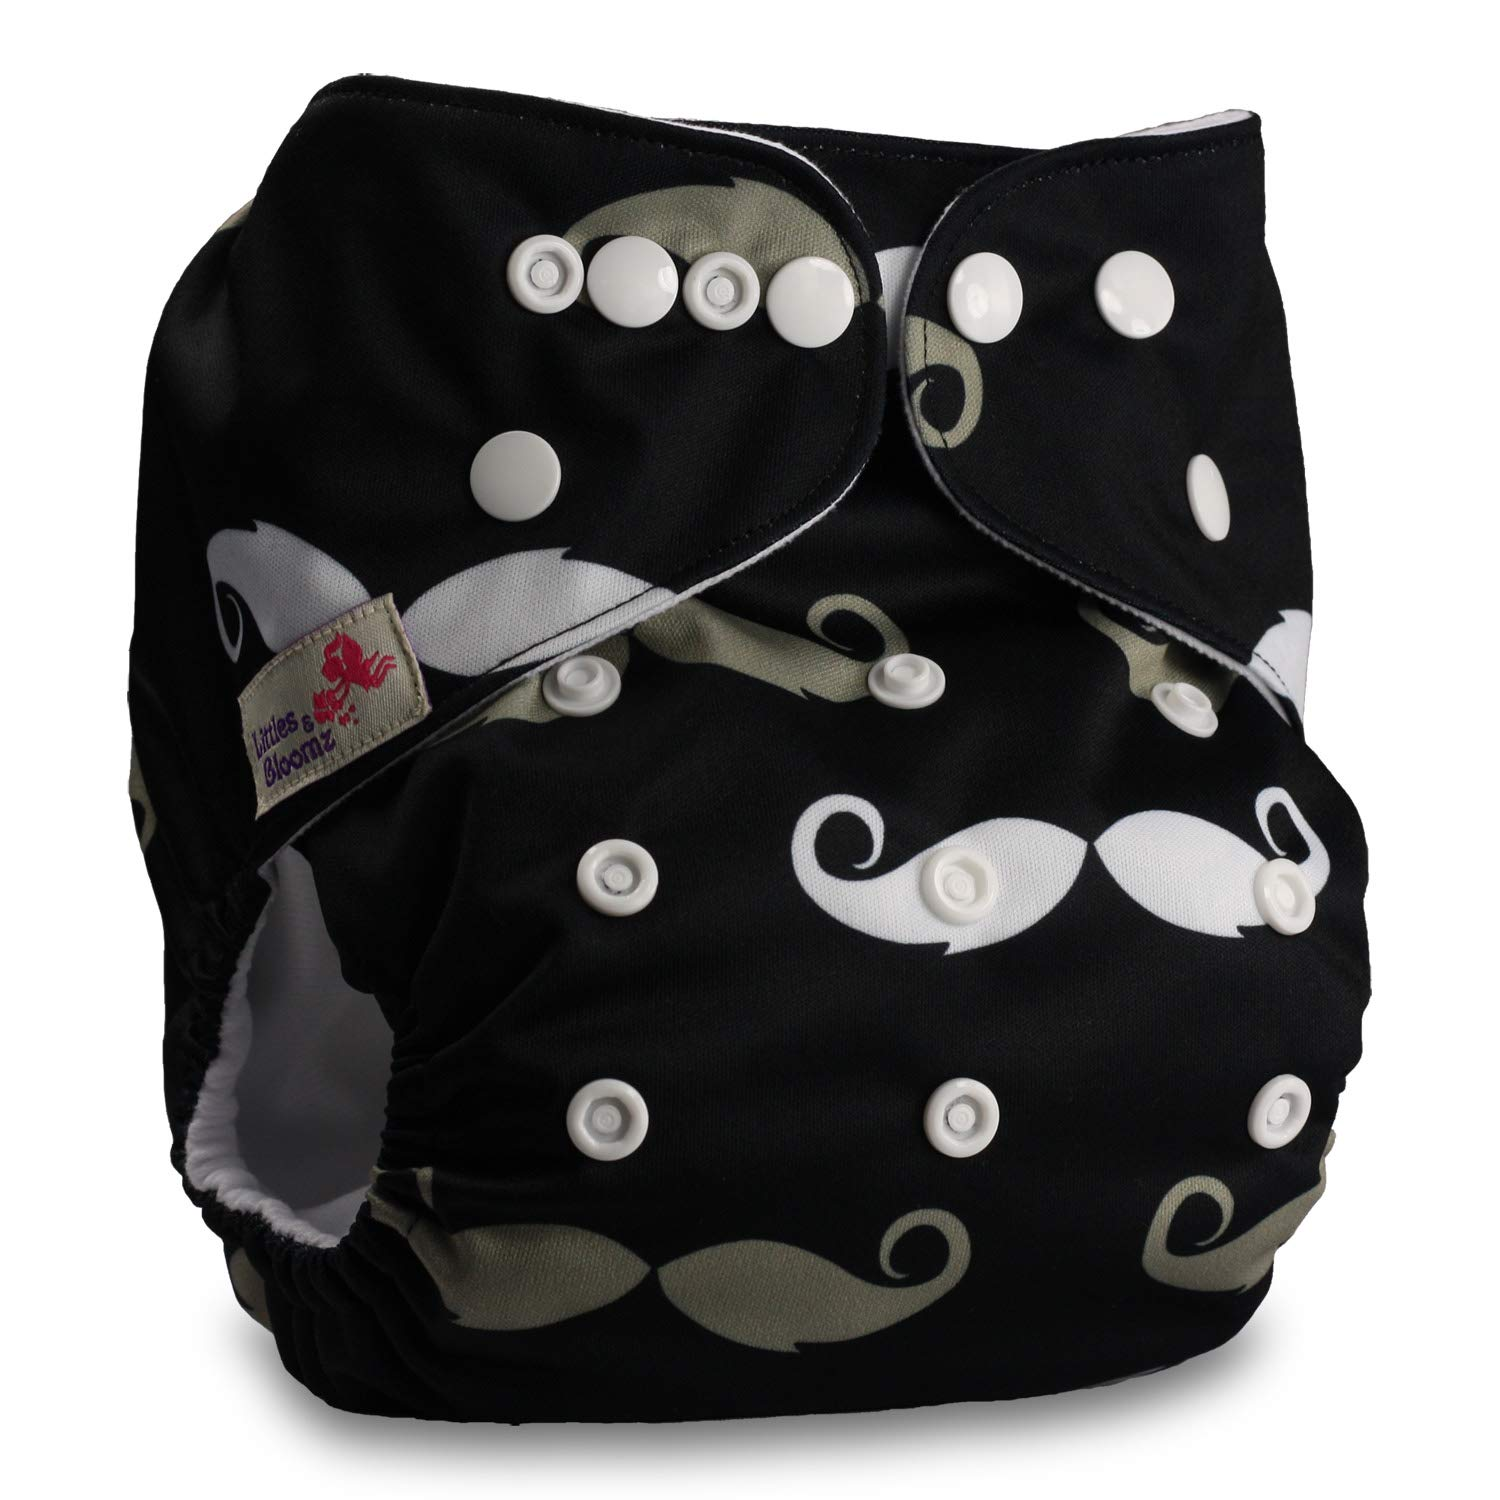 Littles & Bloomz, Reusable Pocket Cloth Nappy, Fastener: Popper, Set of 1, Pattern 62, With 2 Bamboo Inserts